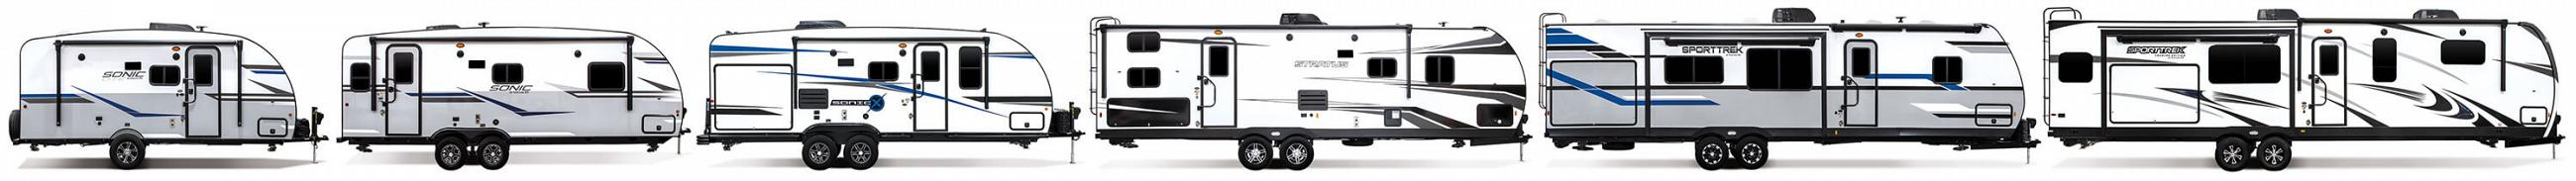 2021 Venture RV Exterior Product Lineup